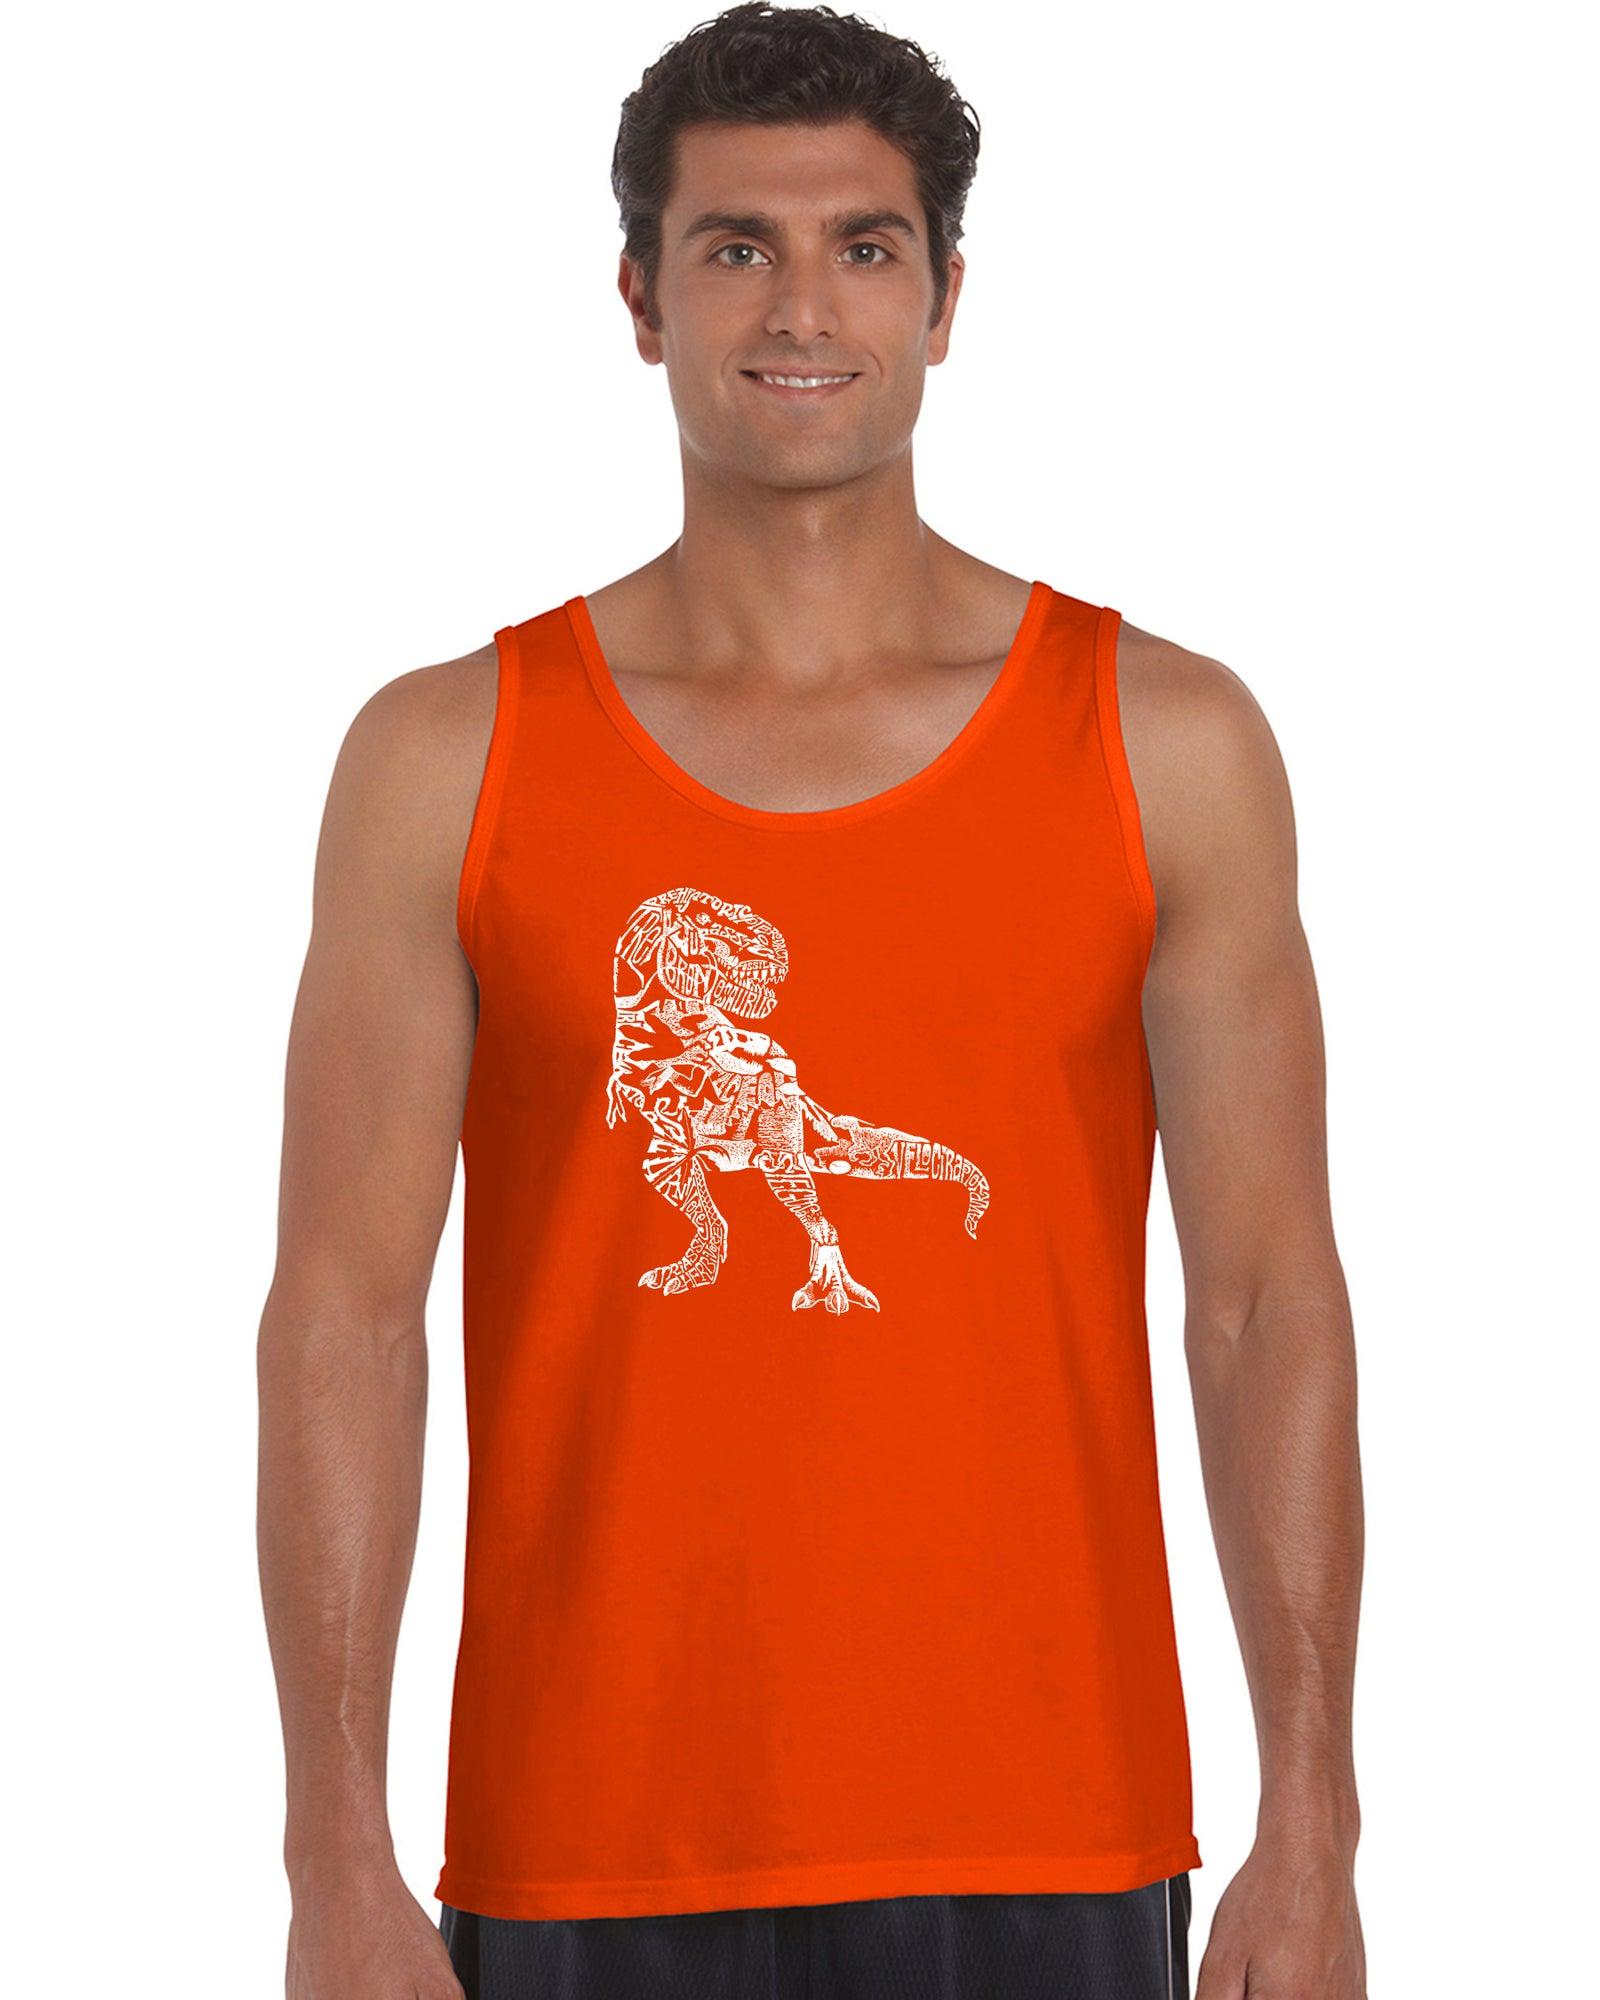 LA Pop Art Men's Word Art Tank Top - Dino Pics Casual No Sleeve